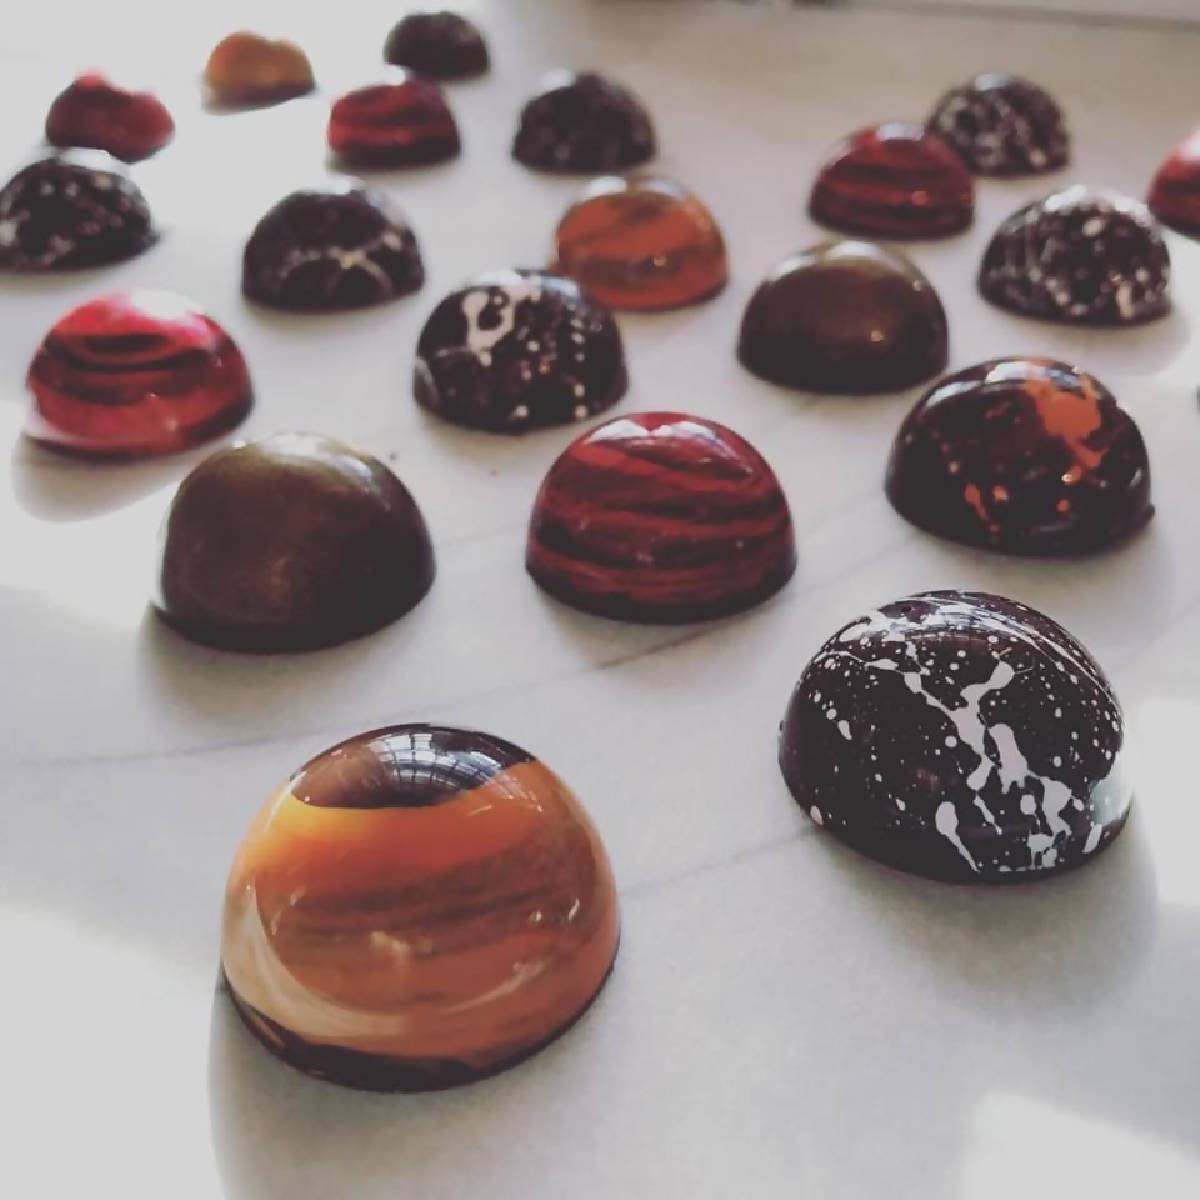 Hand-painted Bonbons - made cleveland